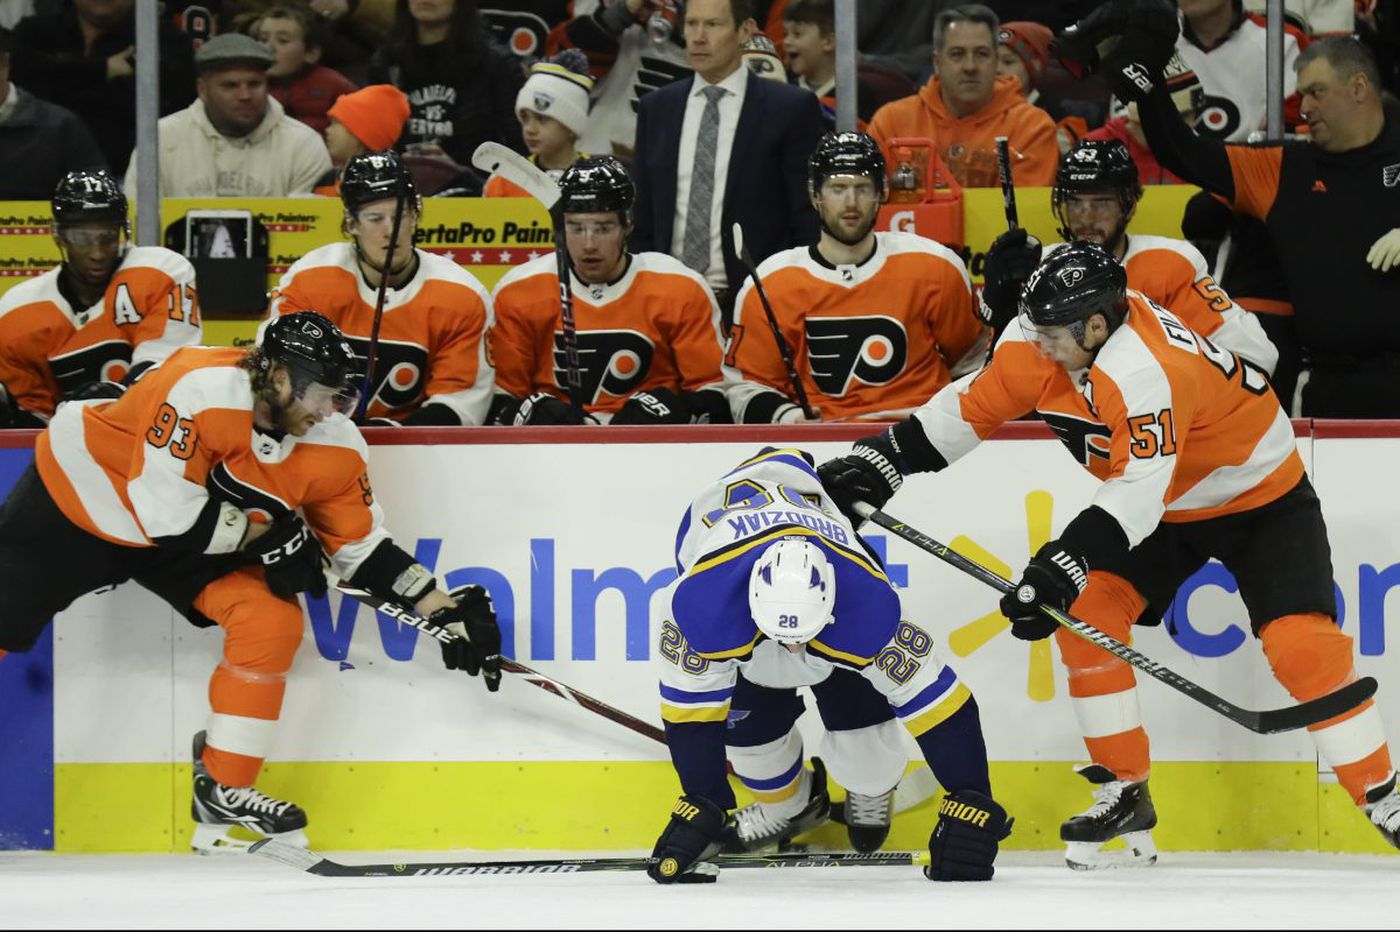 In NHL debut, Tyrell Goulbourne sparks Flyers past Blues